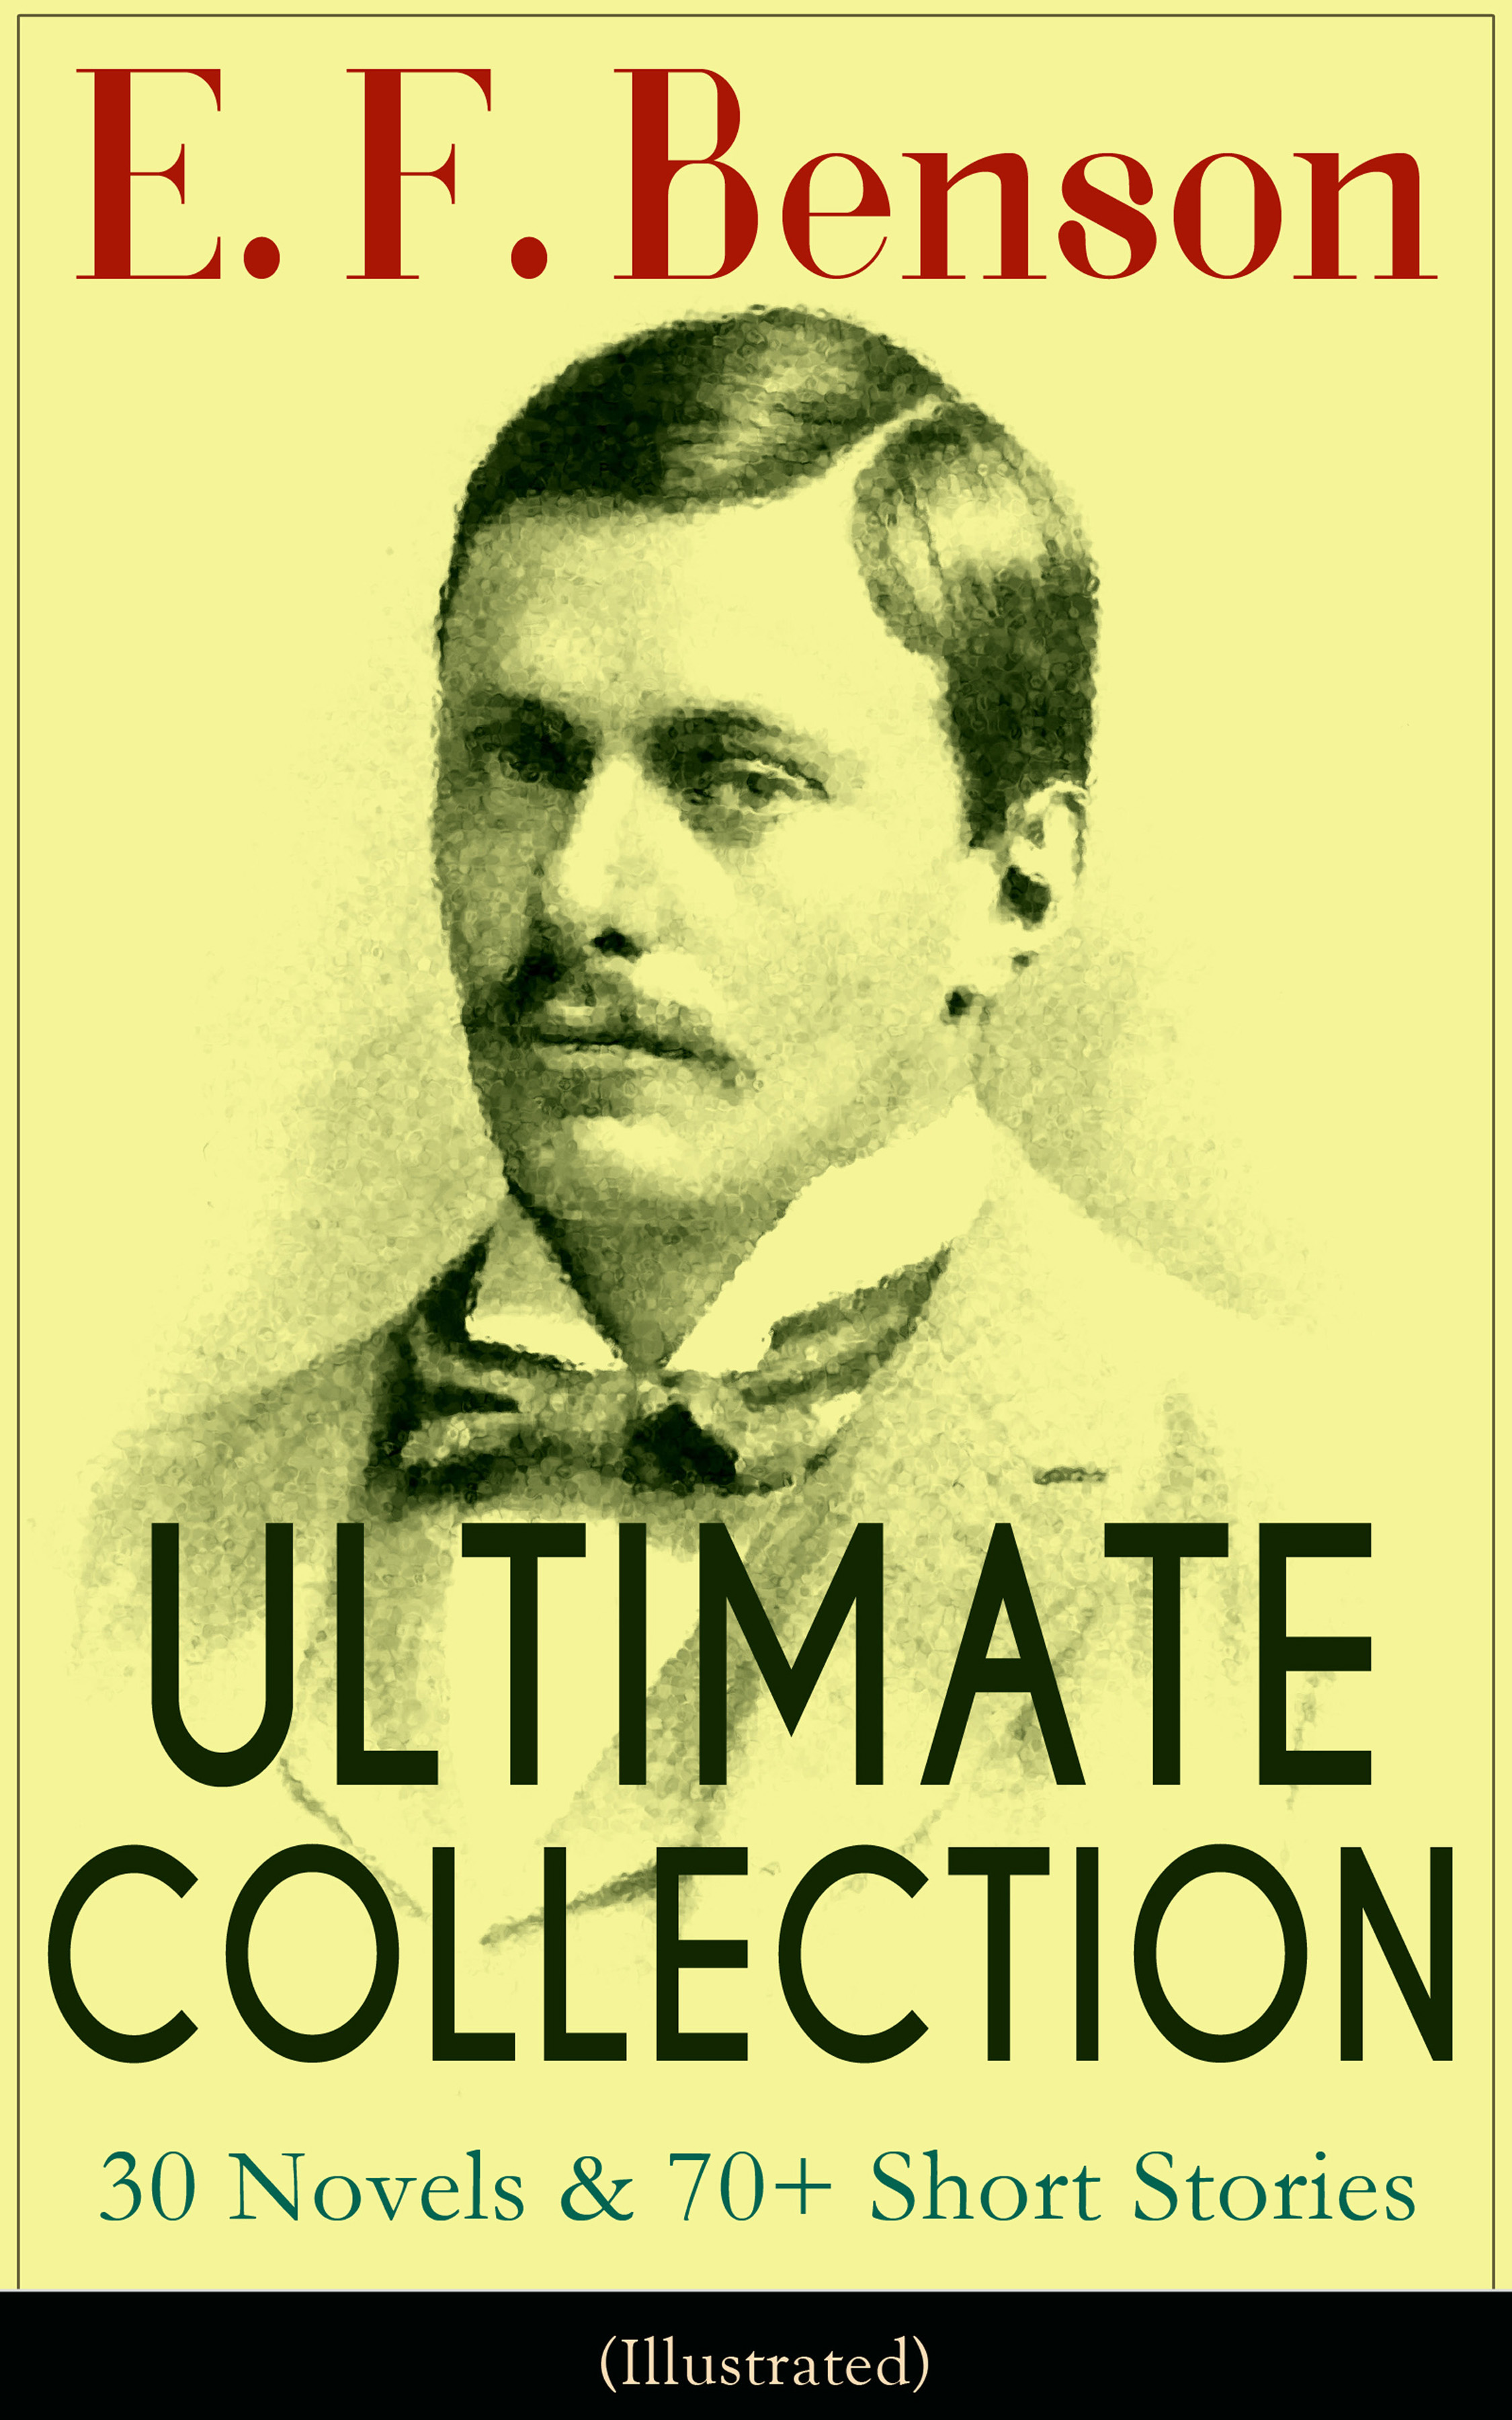 E. F. Benson E. F. Benson ULTIMATE COLLECTION: 30 Novels & 70+ Short Stories (Illustrated): Mapp and Lucia Series, Dodo Trilogy, The Room in The Tower, Paying Guests, The Relentless City, Historical Works, Biography of Charlotte Bronte… все цены